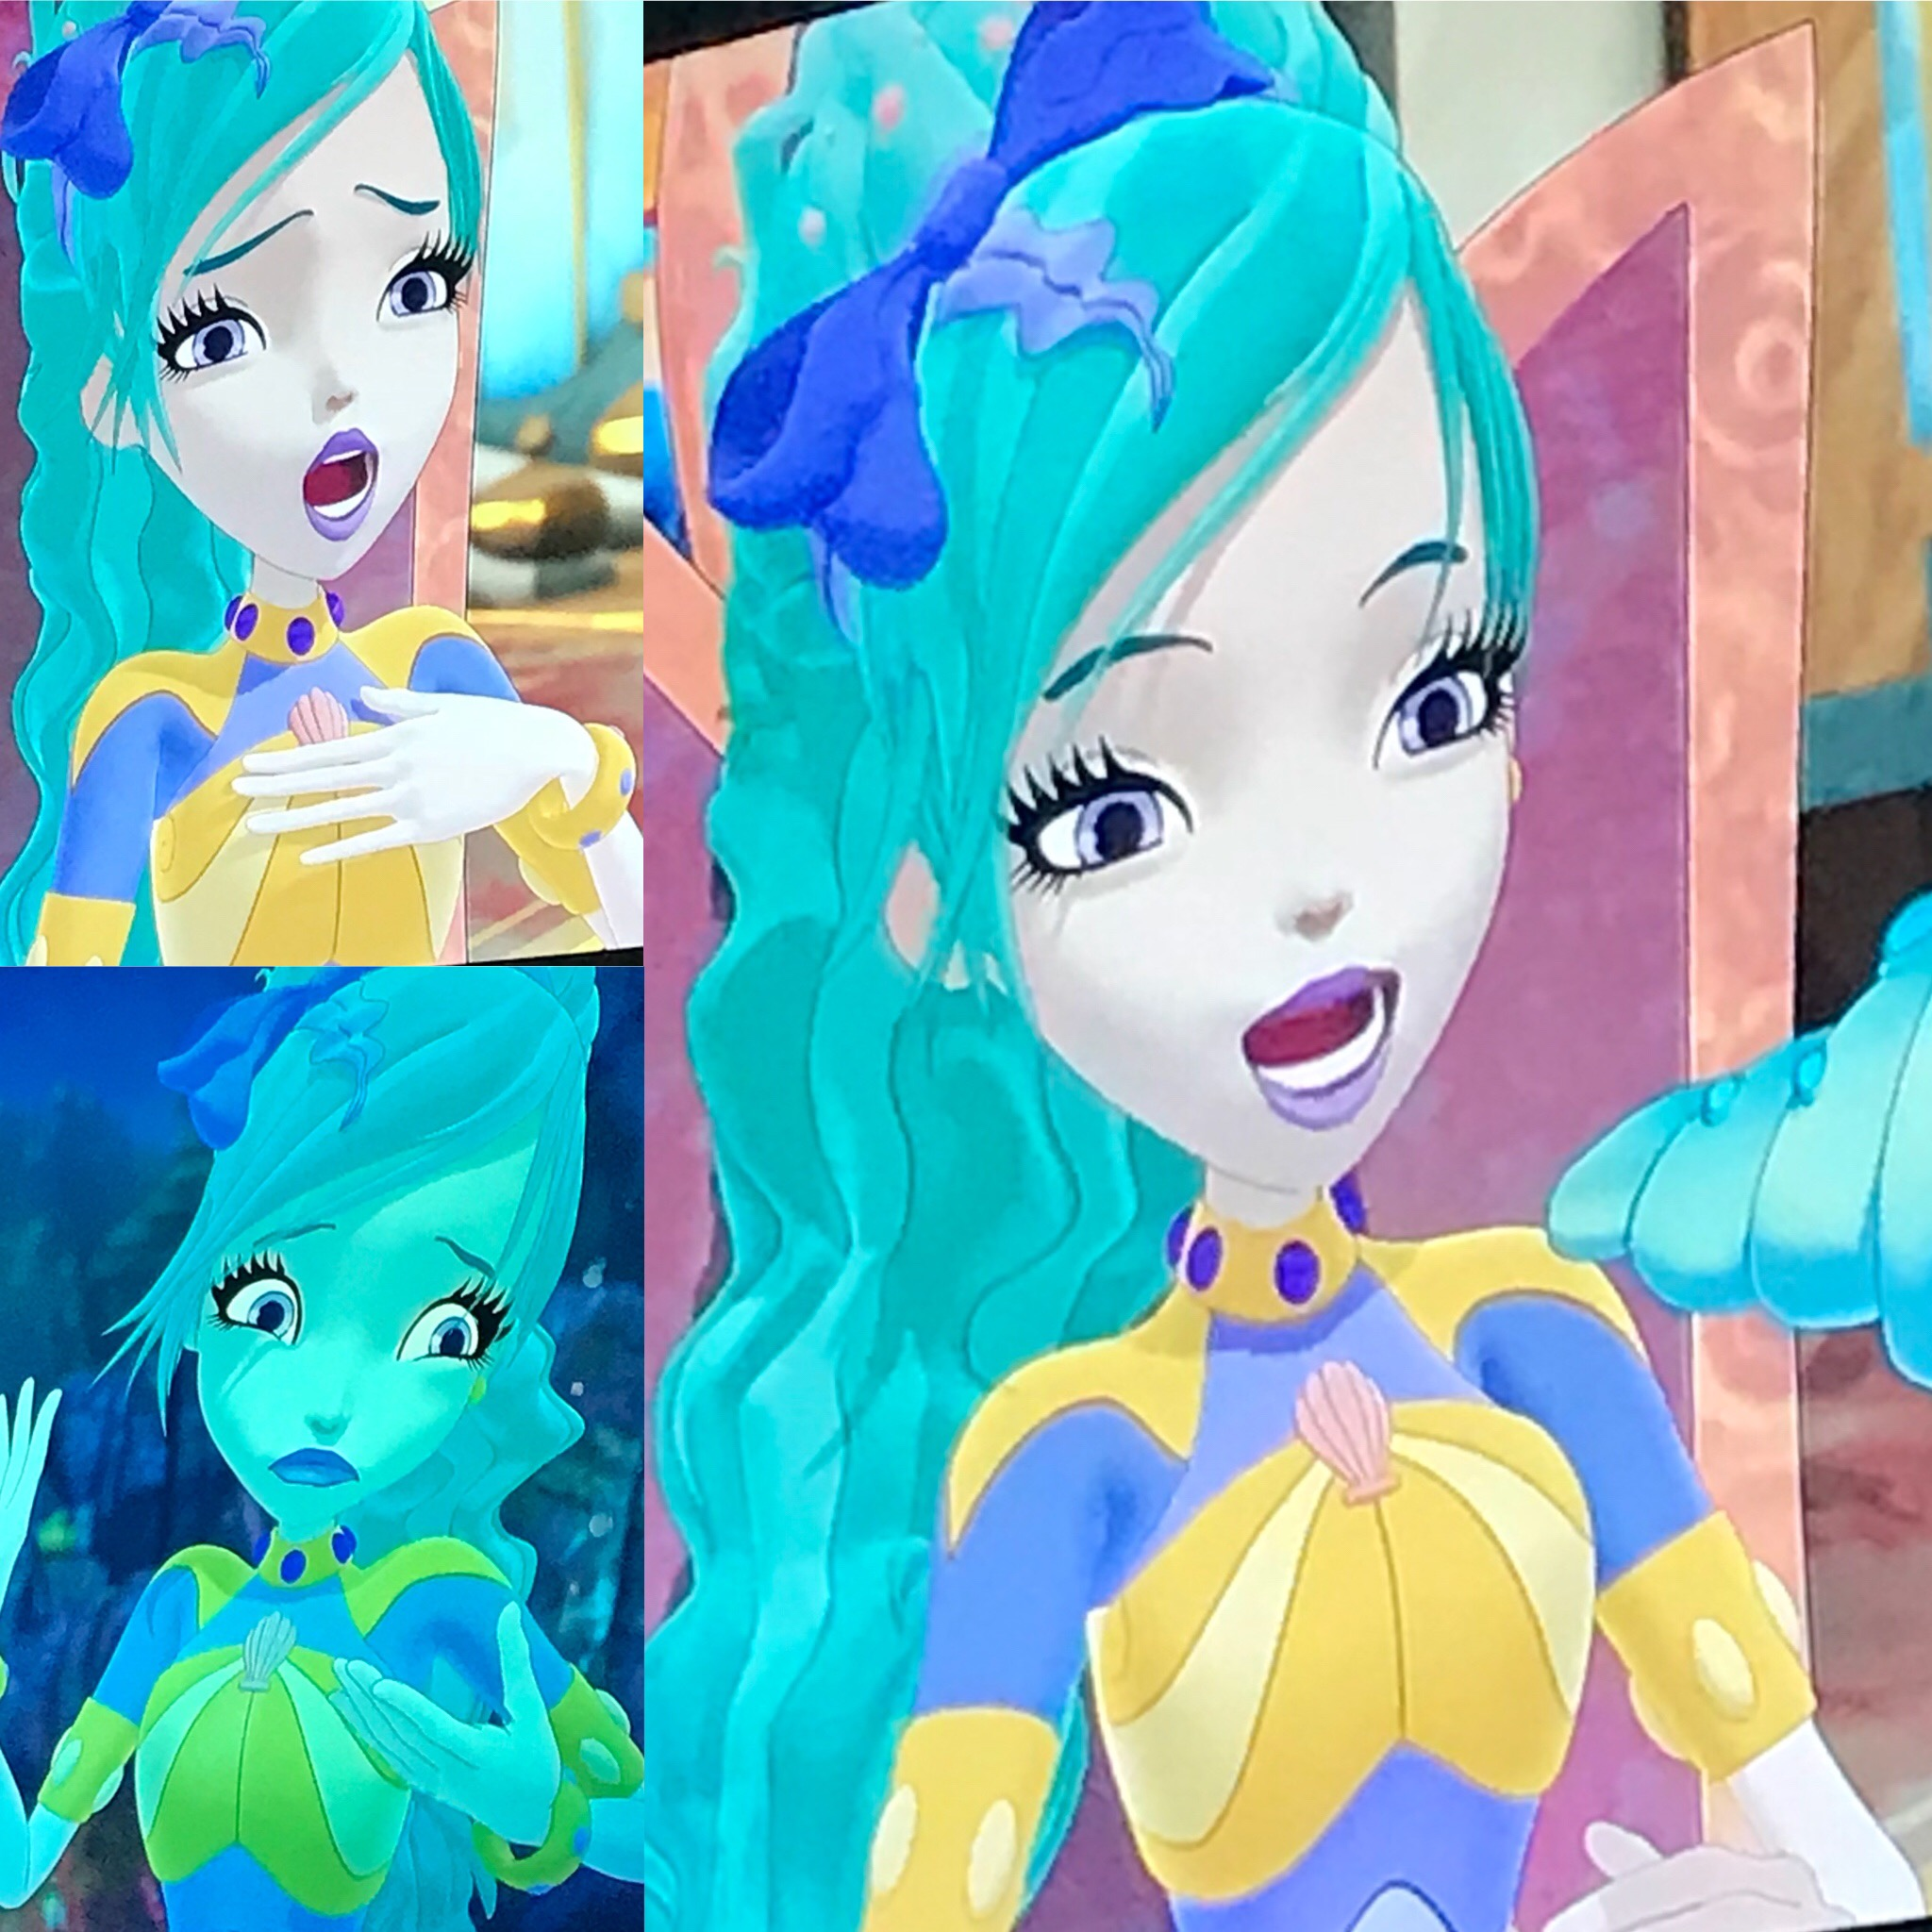 - Dreams do come true! Super excited to announce that after watching many Sunday morning cartoons as a kid, I have finally become one myself! You can catch me as The Little Mermaid on the latest episode of Regal Academy on Nick Jr!